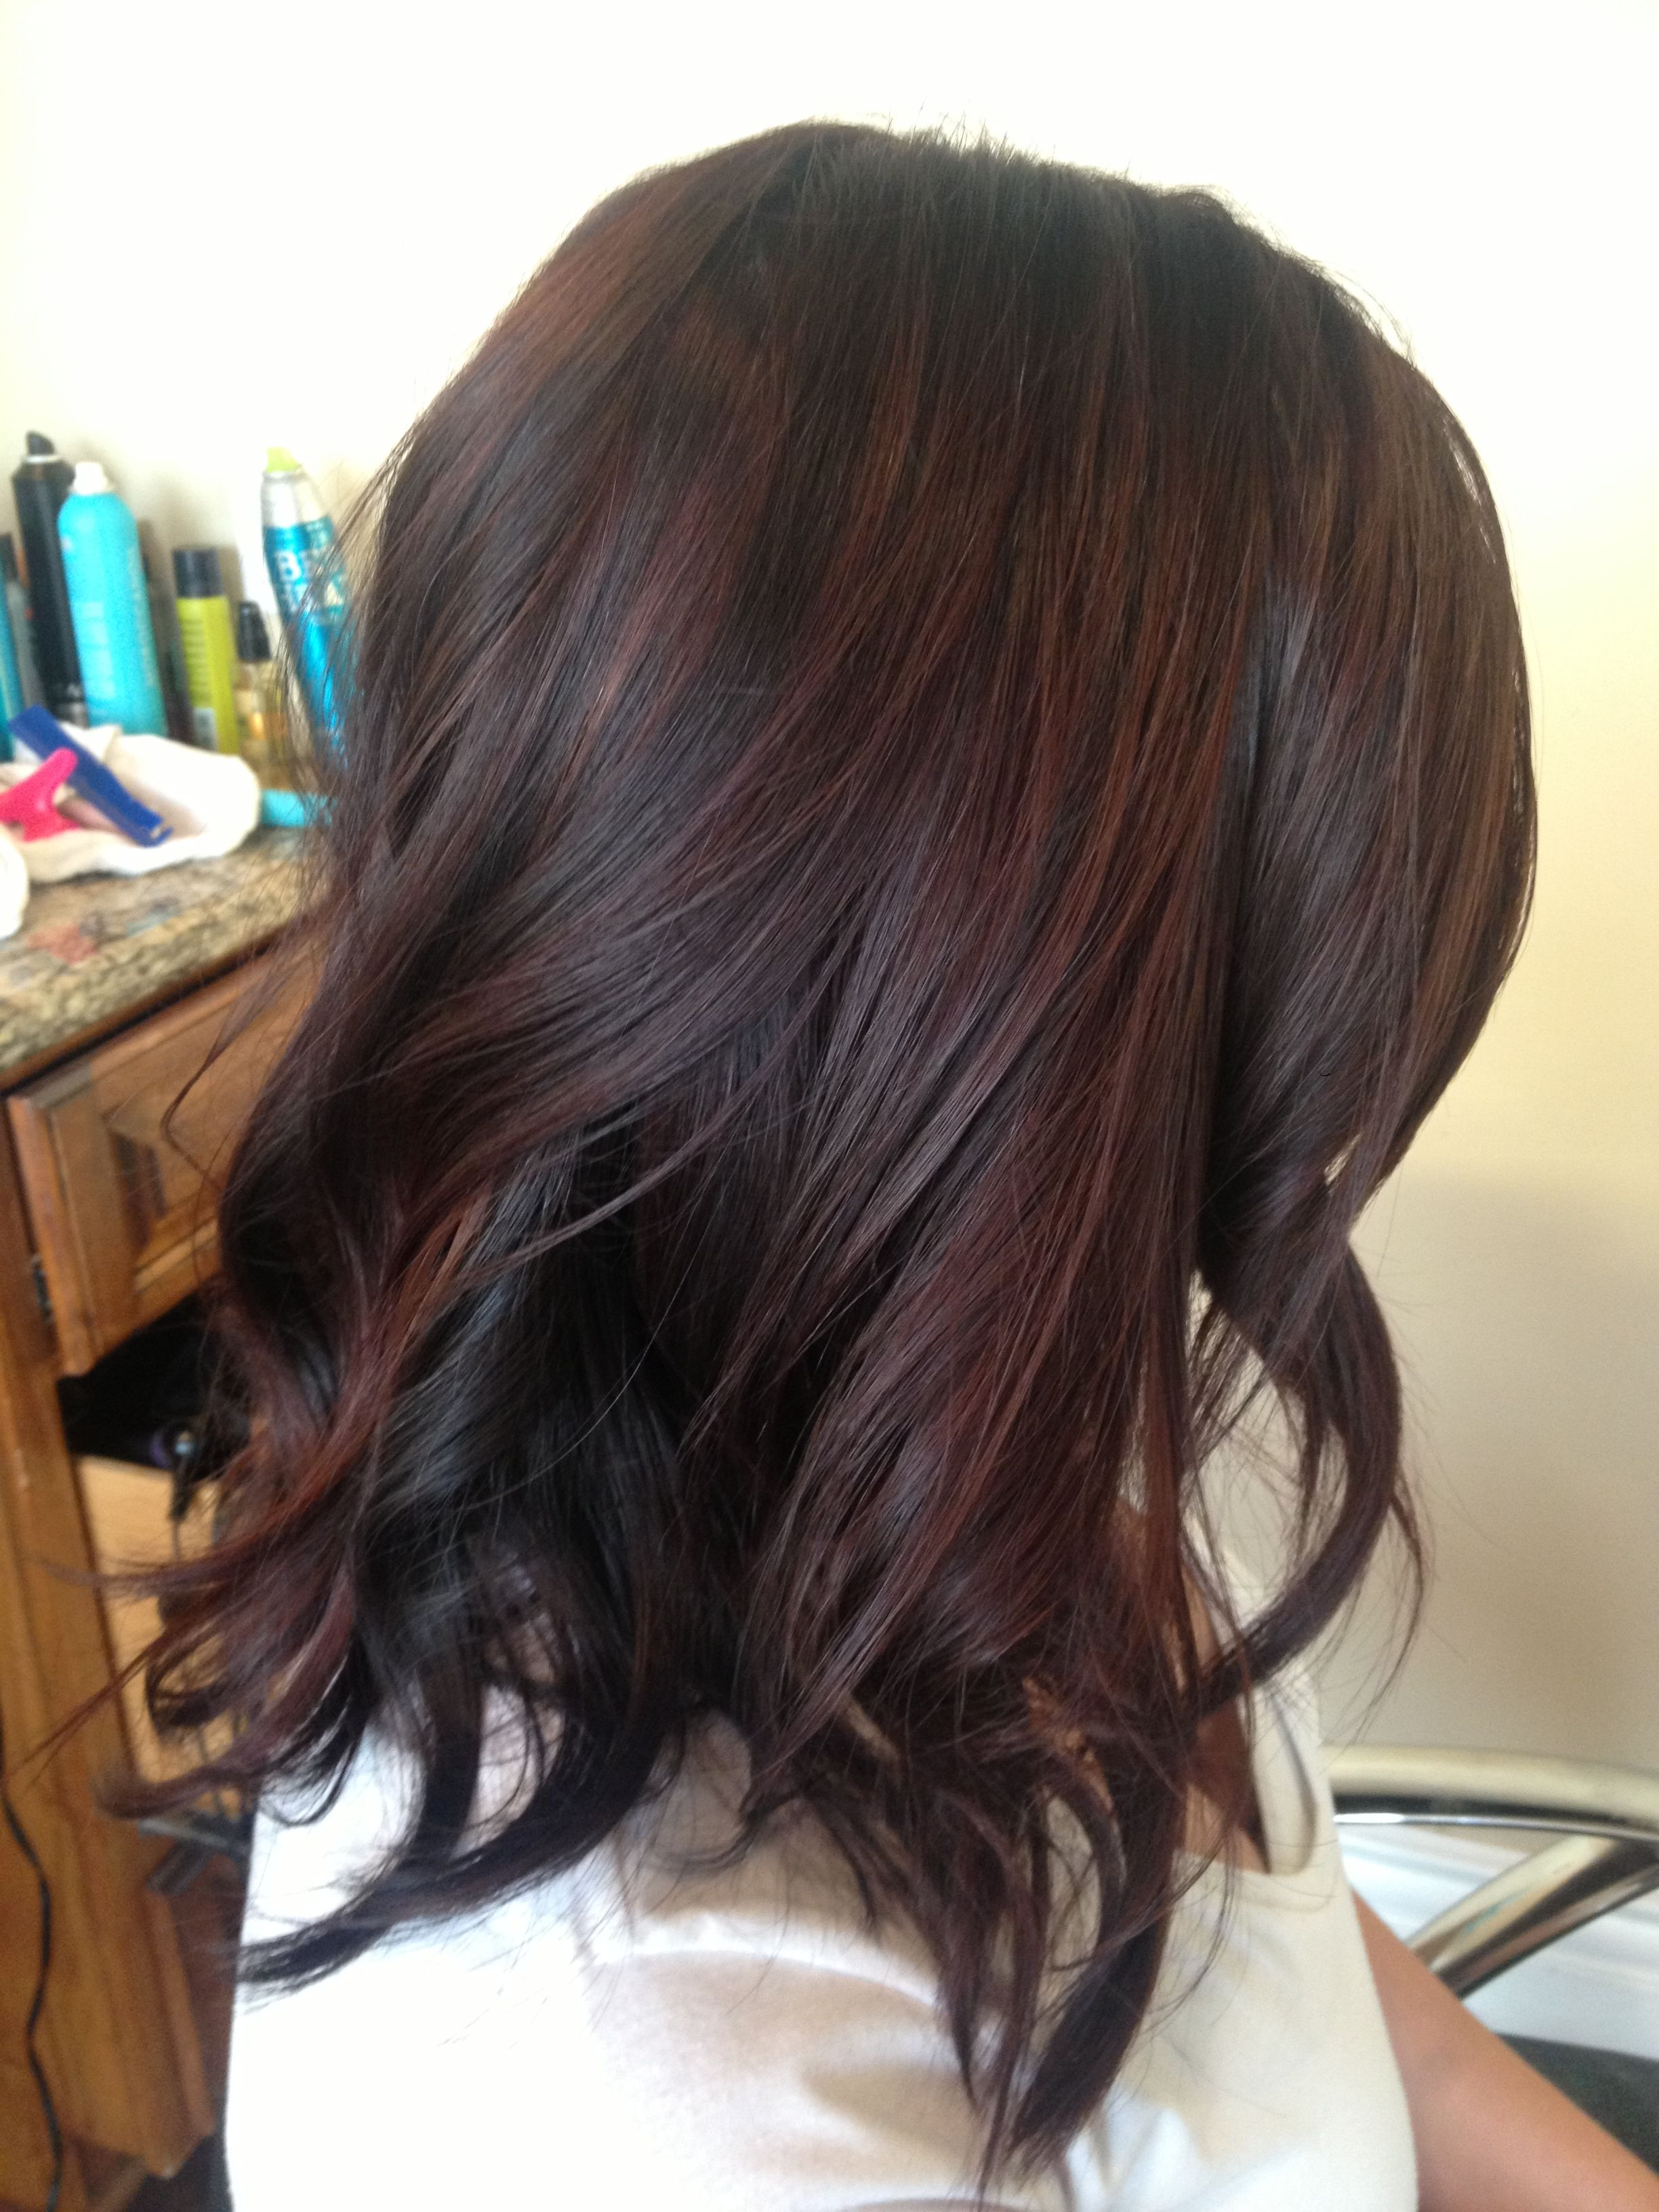 I Wish I Could Pull This Look Off Brown And Red Hair With Highlights Theresa Copeland Hair Styles Hair Highlights Hair